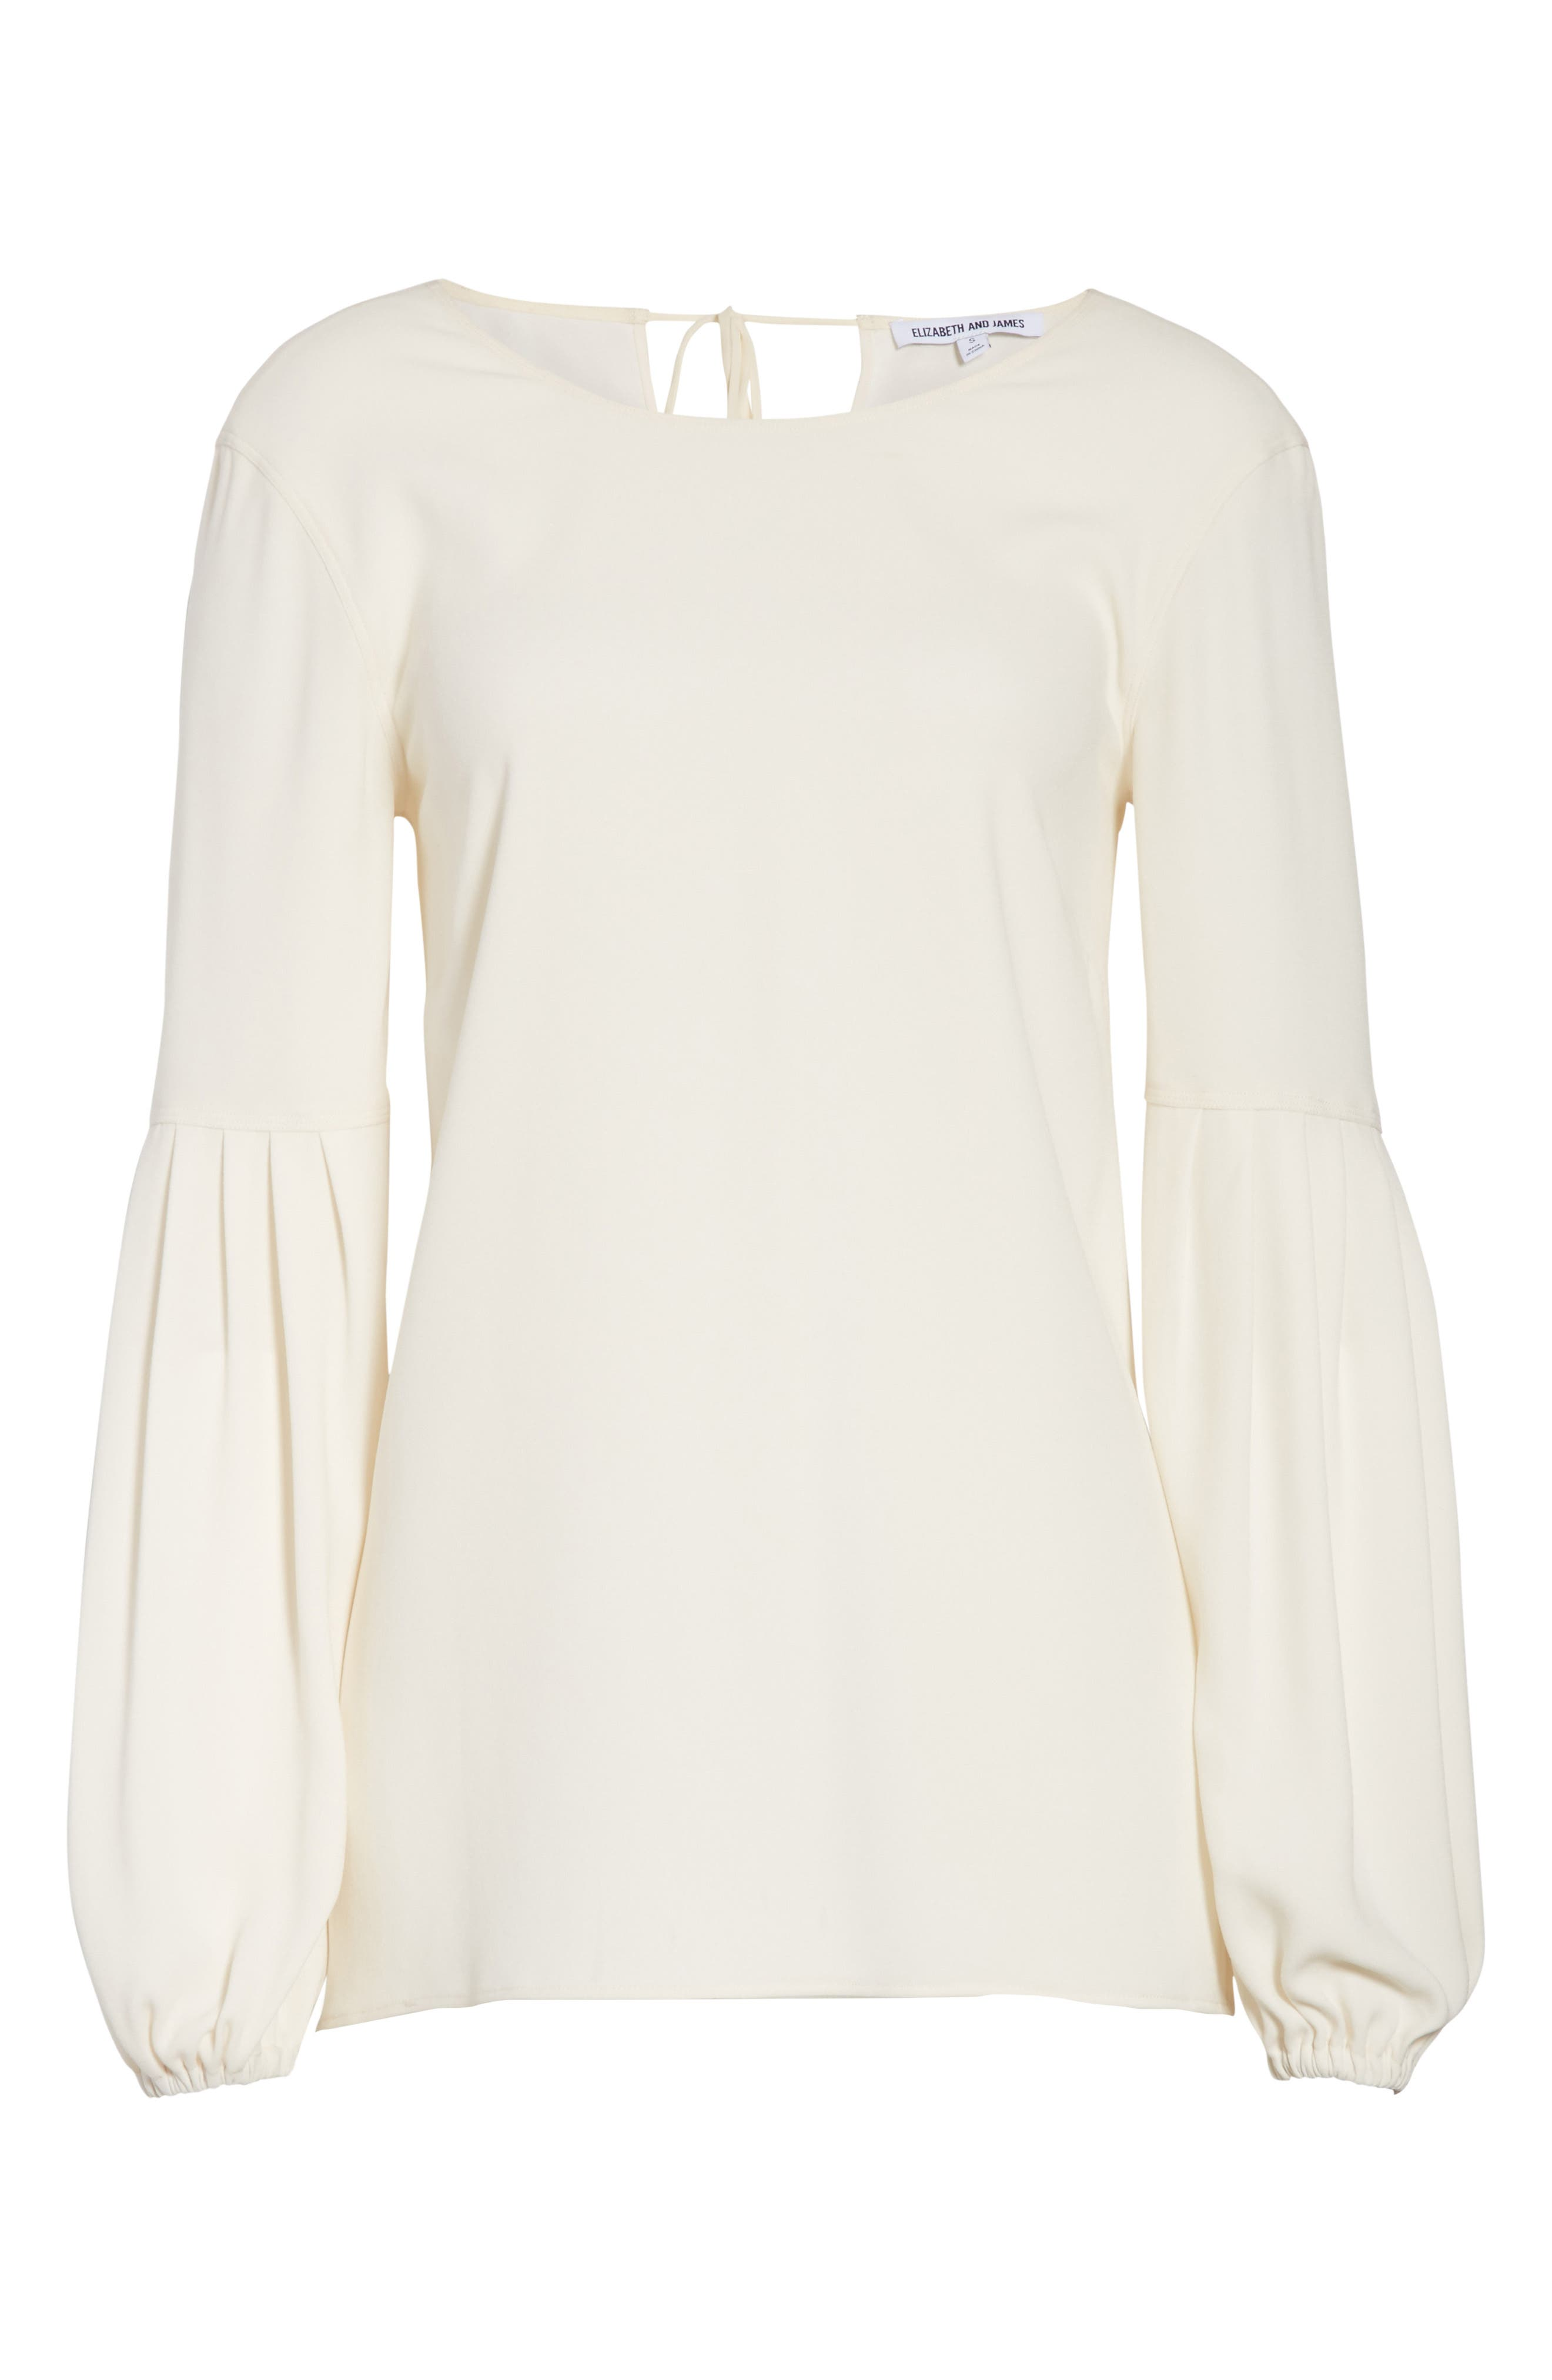 Harriet Puff Sleeve Blouse,                             Alternate thumbnail 7, color,                             Alabaster